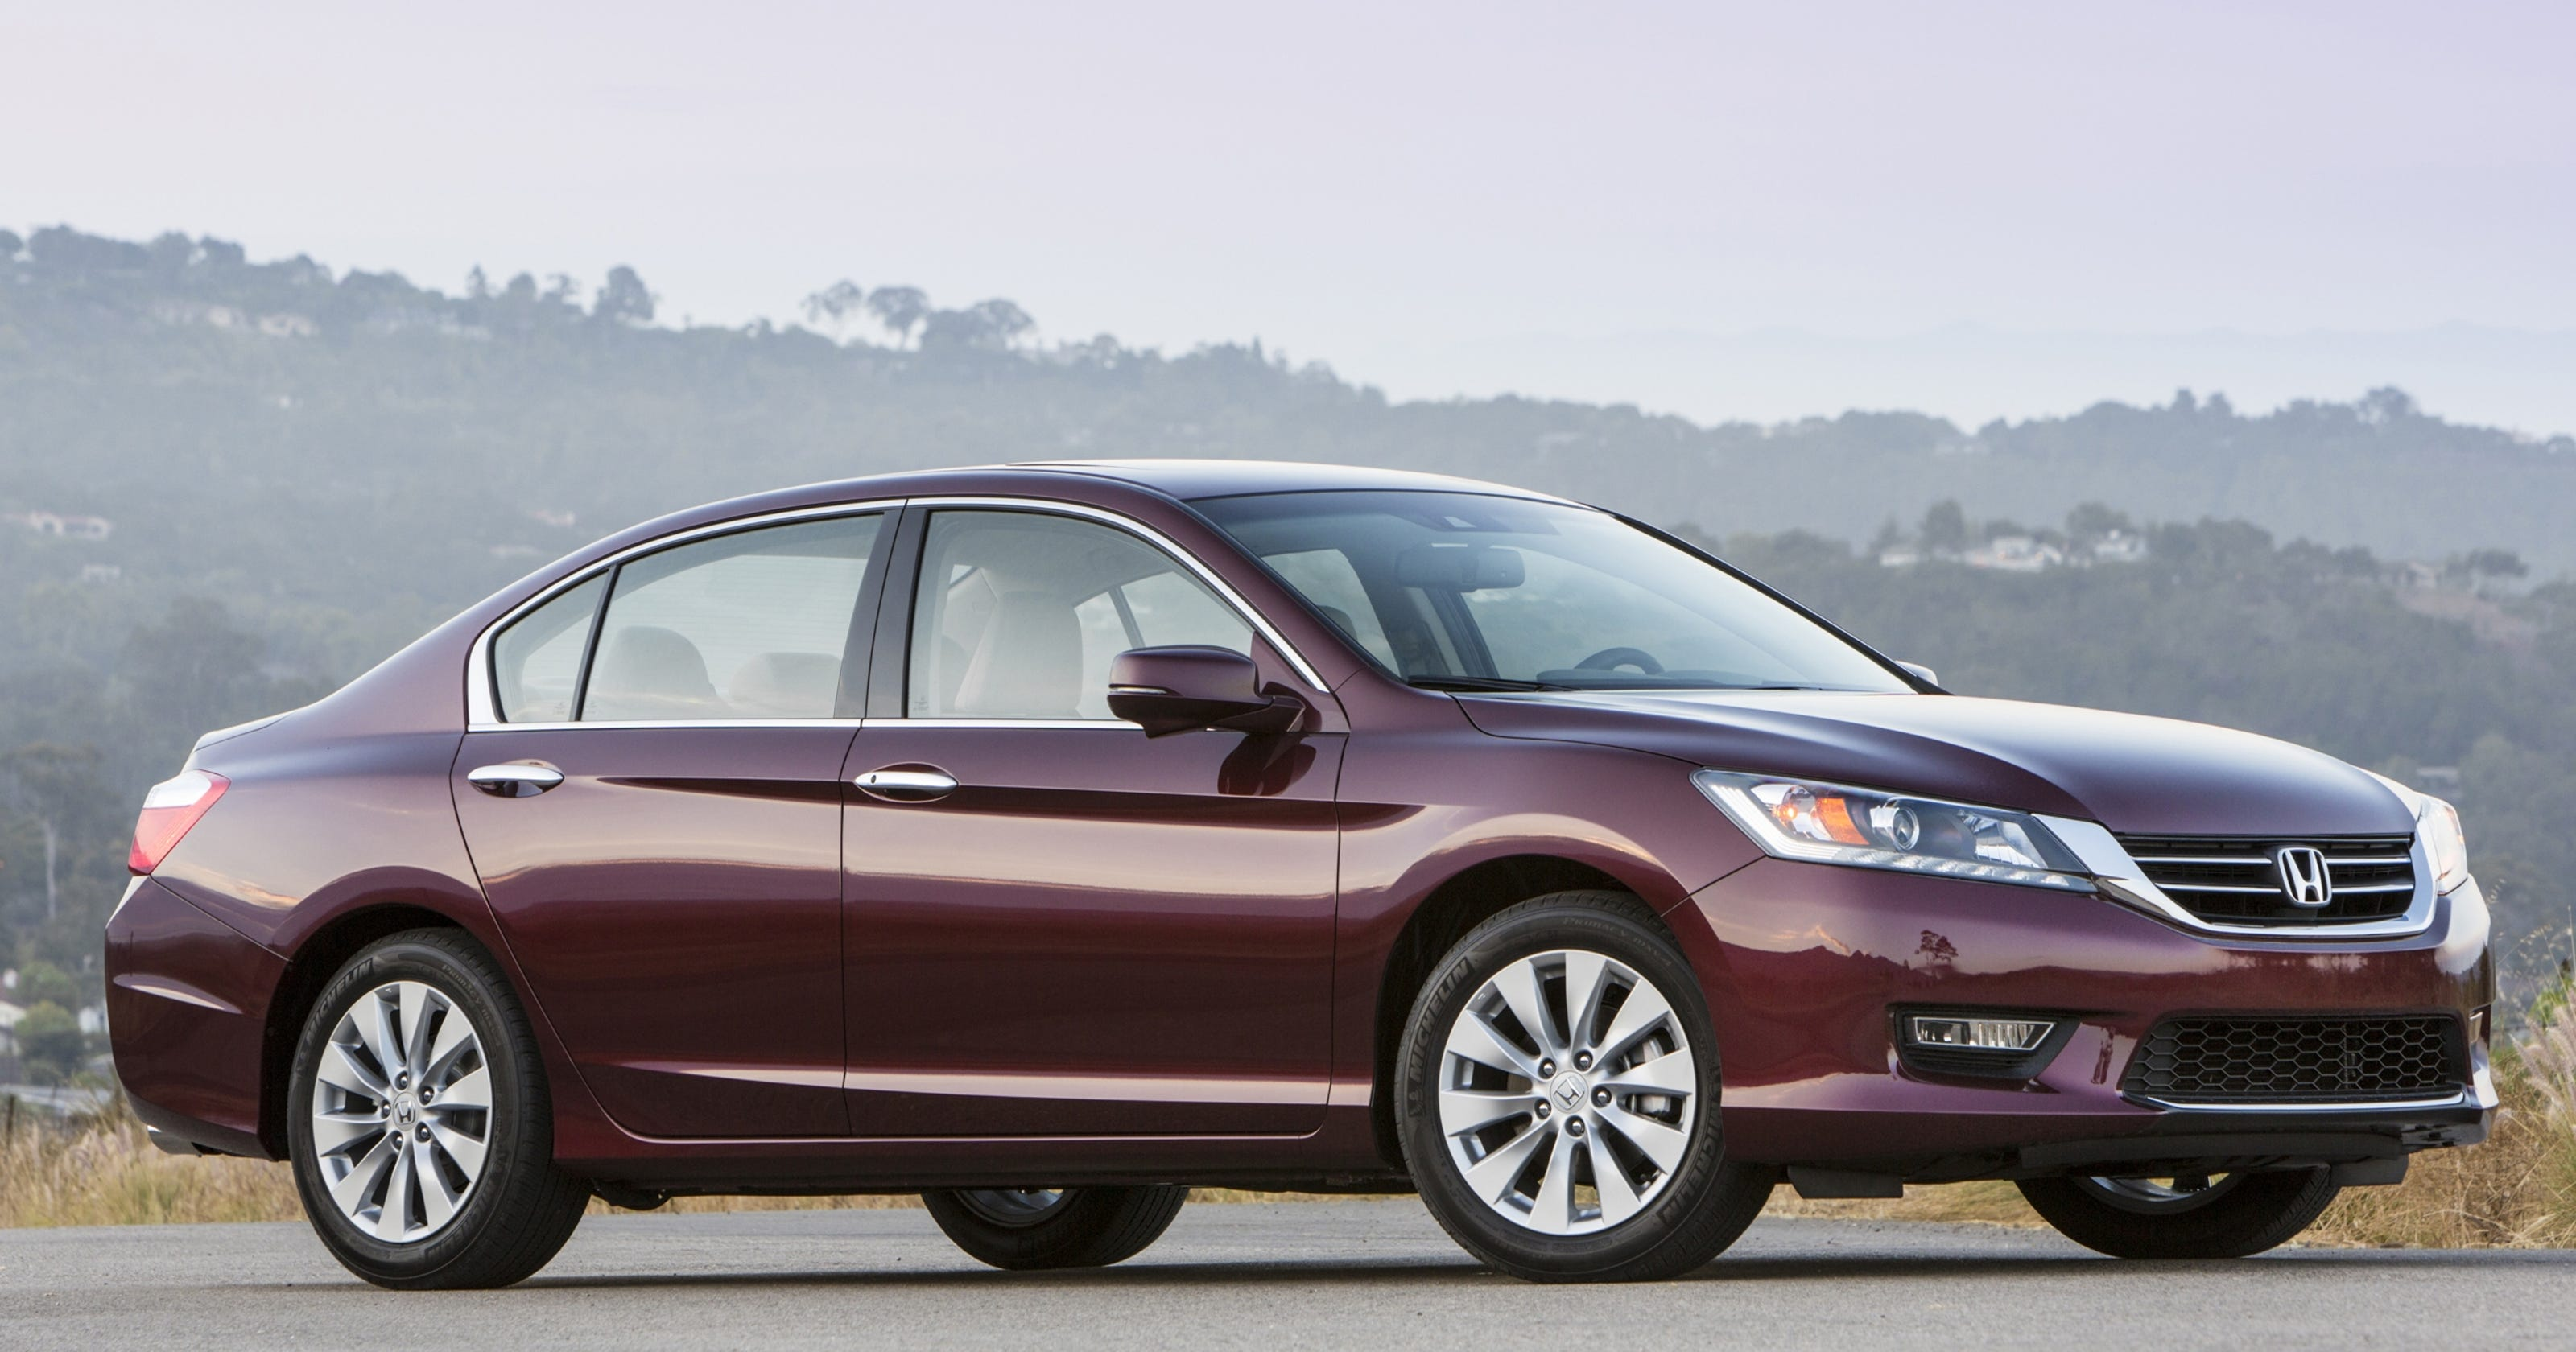 l part front accord review alex pre picture production courtesy exterior of honda dykes sedan